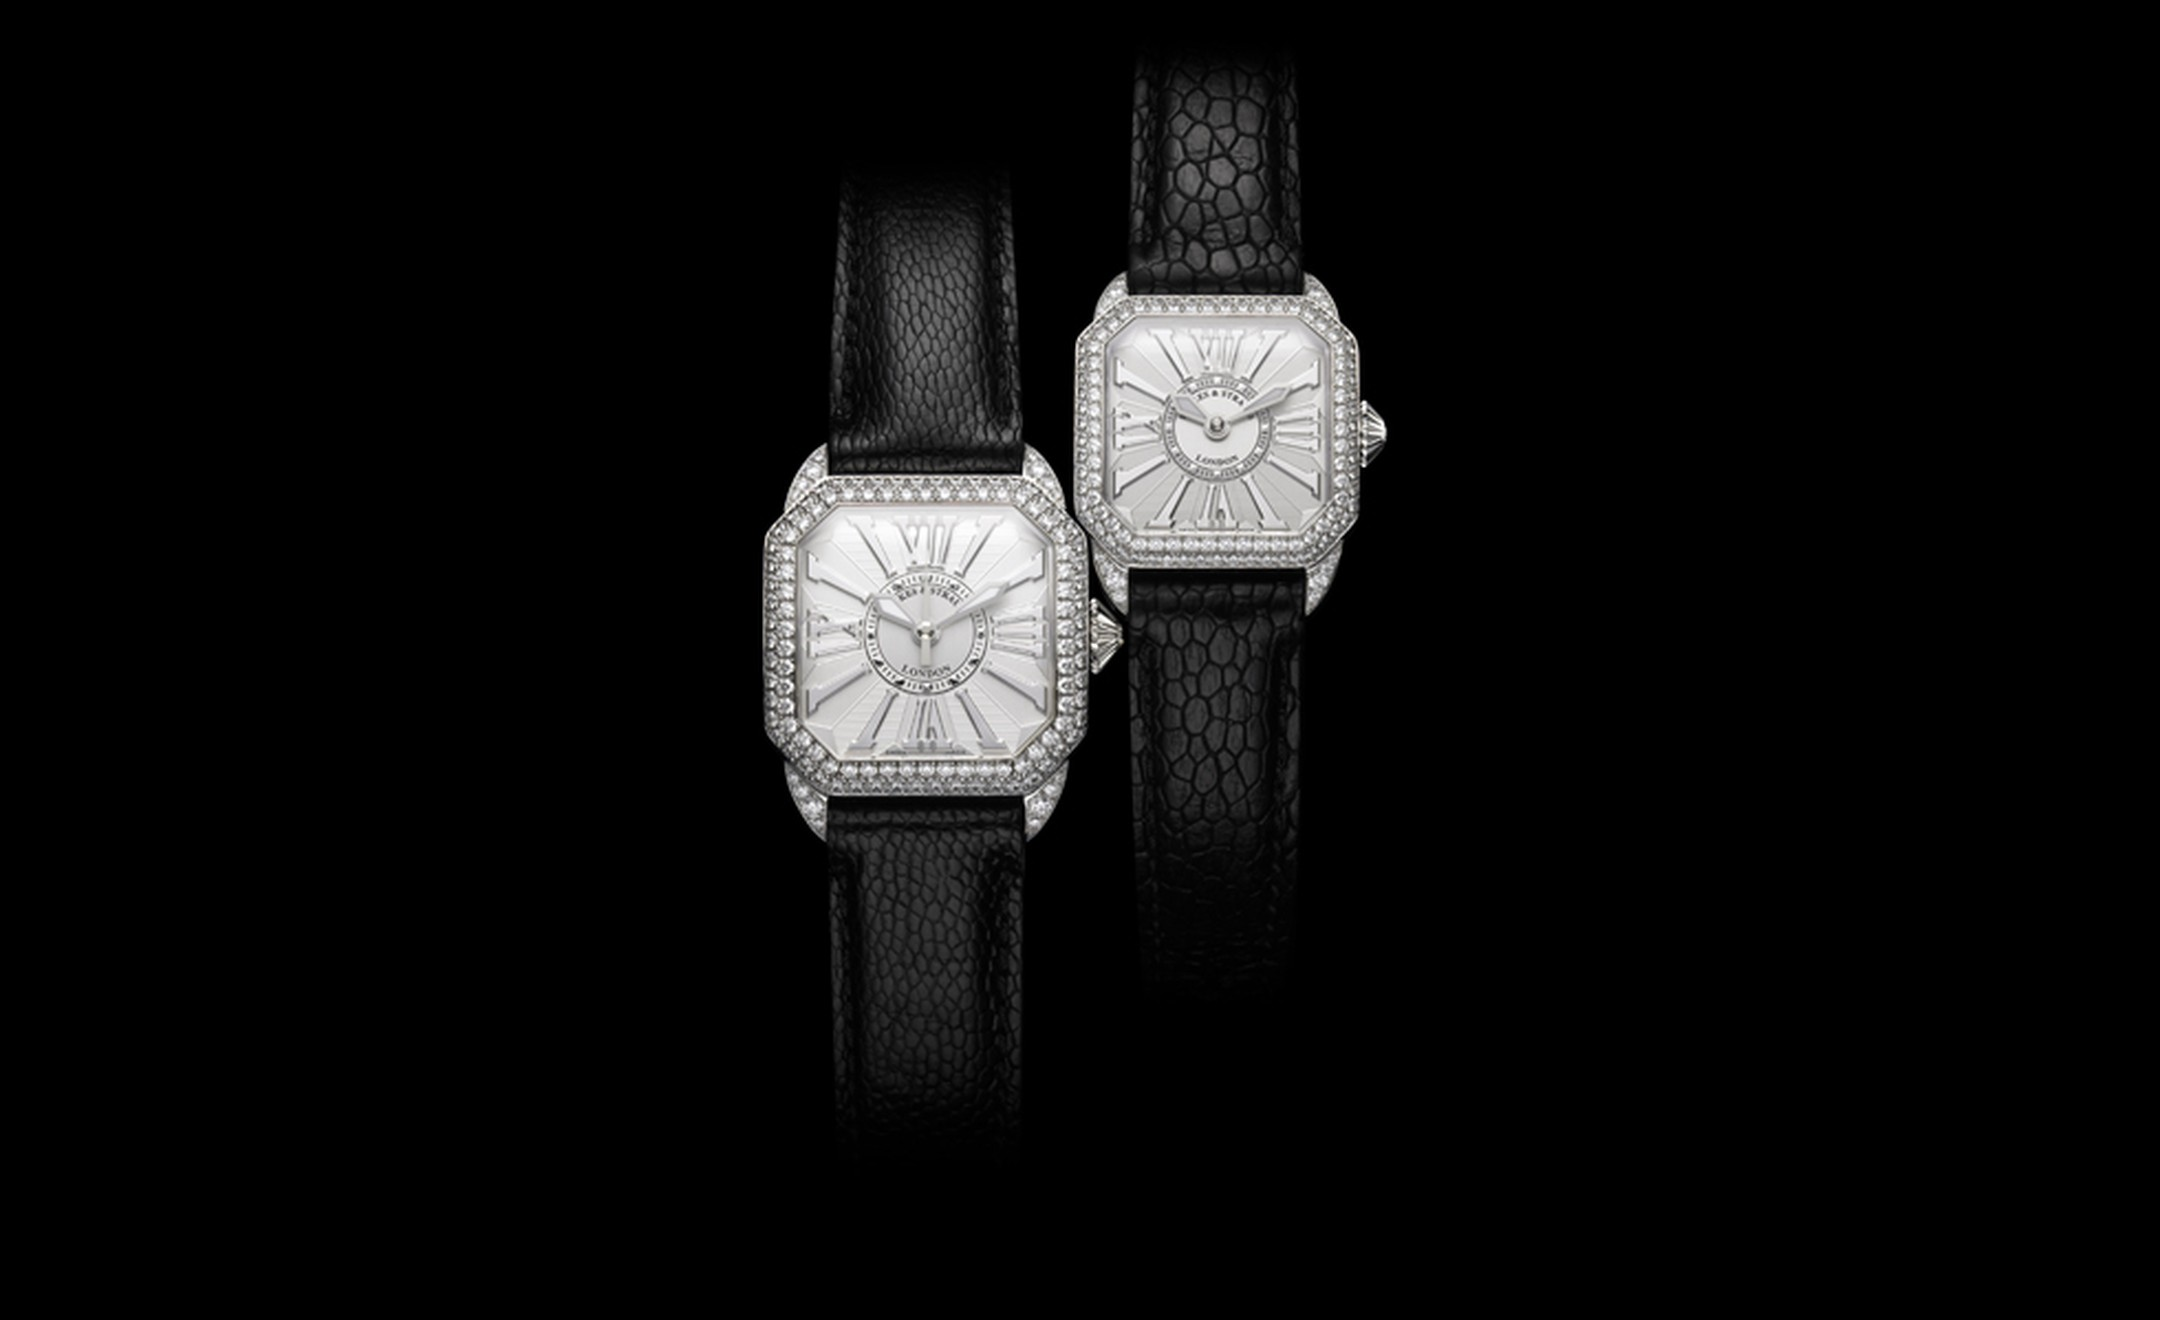 Backes & Strauss, pair of Berkeley watches in white gold. The white dial with white gold Roman numerals has 125  diamonds (2.39 carats). Price: £20,255. The second watch (behind) has 129 diamonds (1.77 carats). Price: £16,130